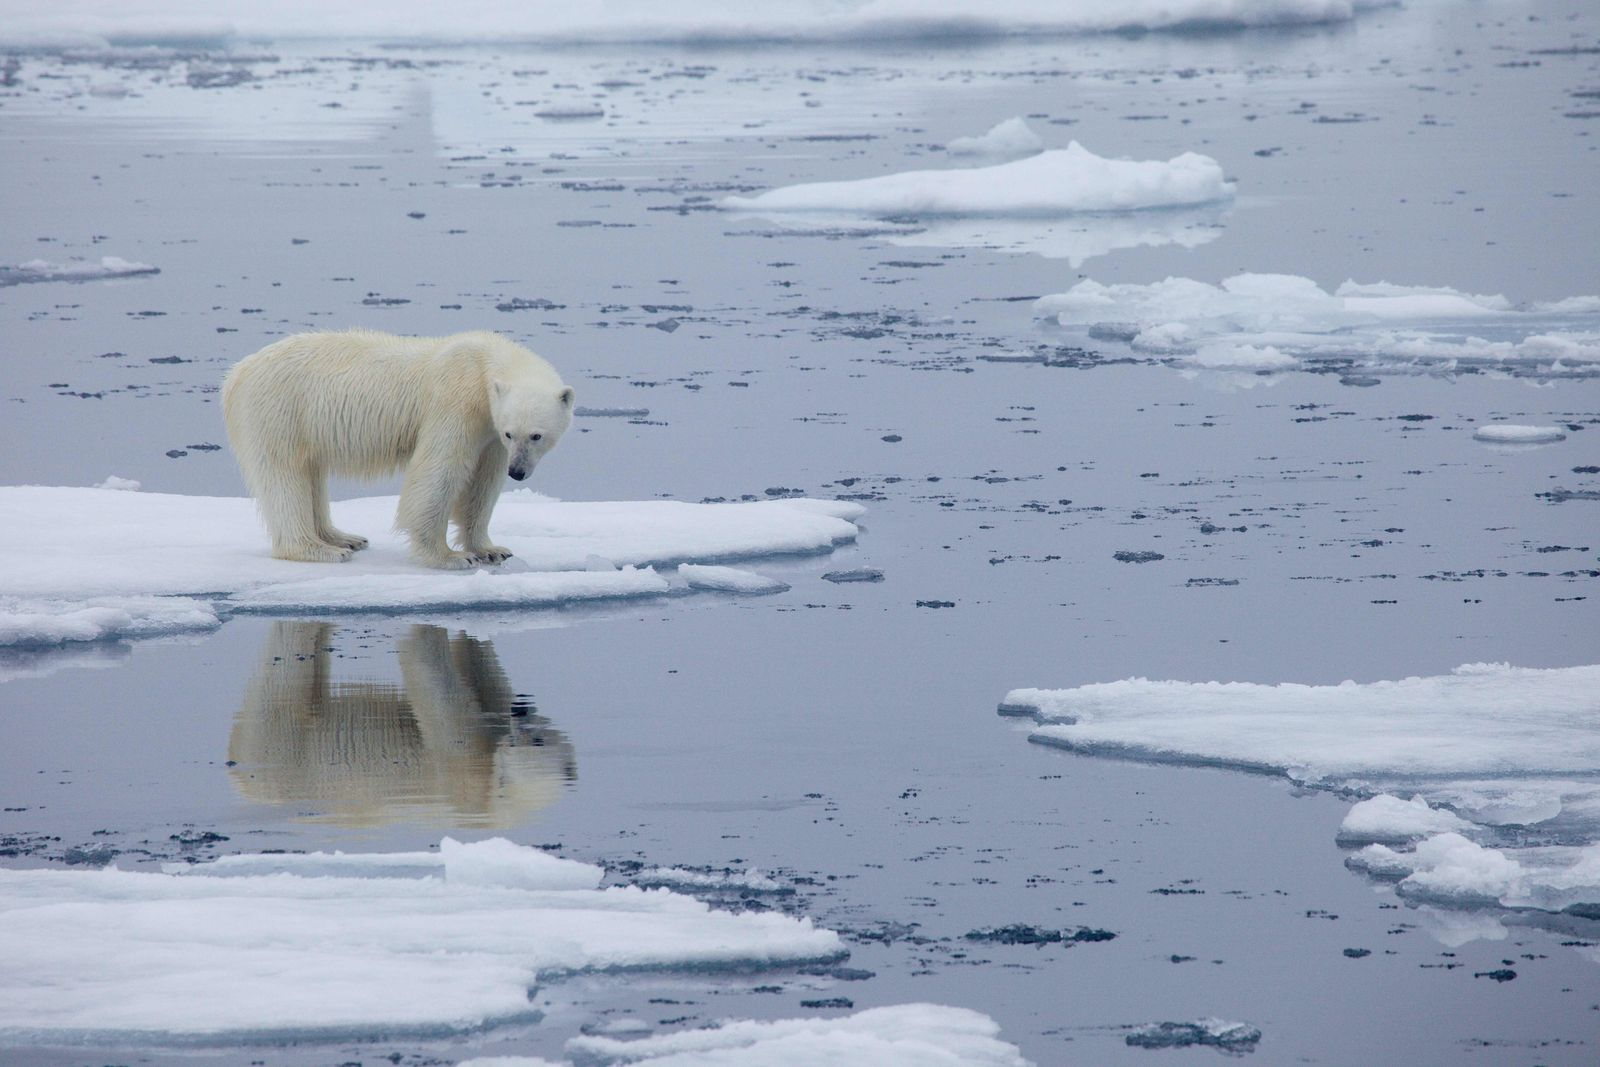 NORWAY-ENVIRONMENT-CLIMATE-WILDLIFE-POLAR-BEAR